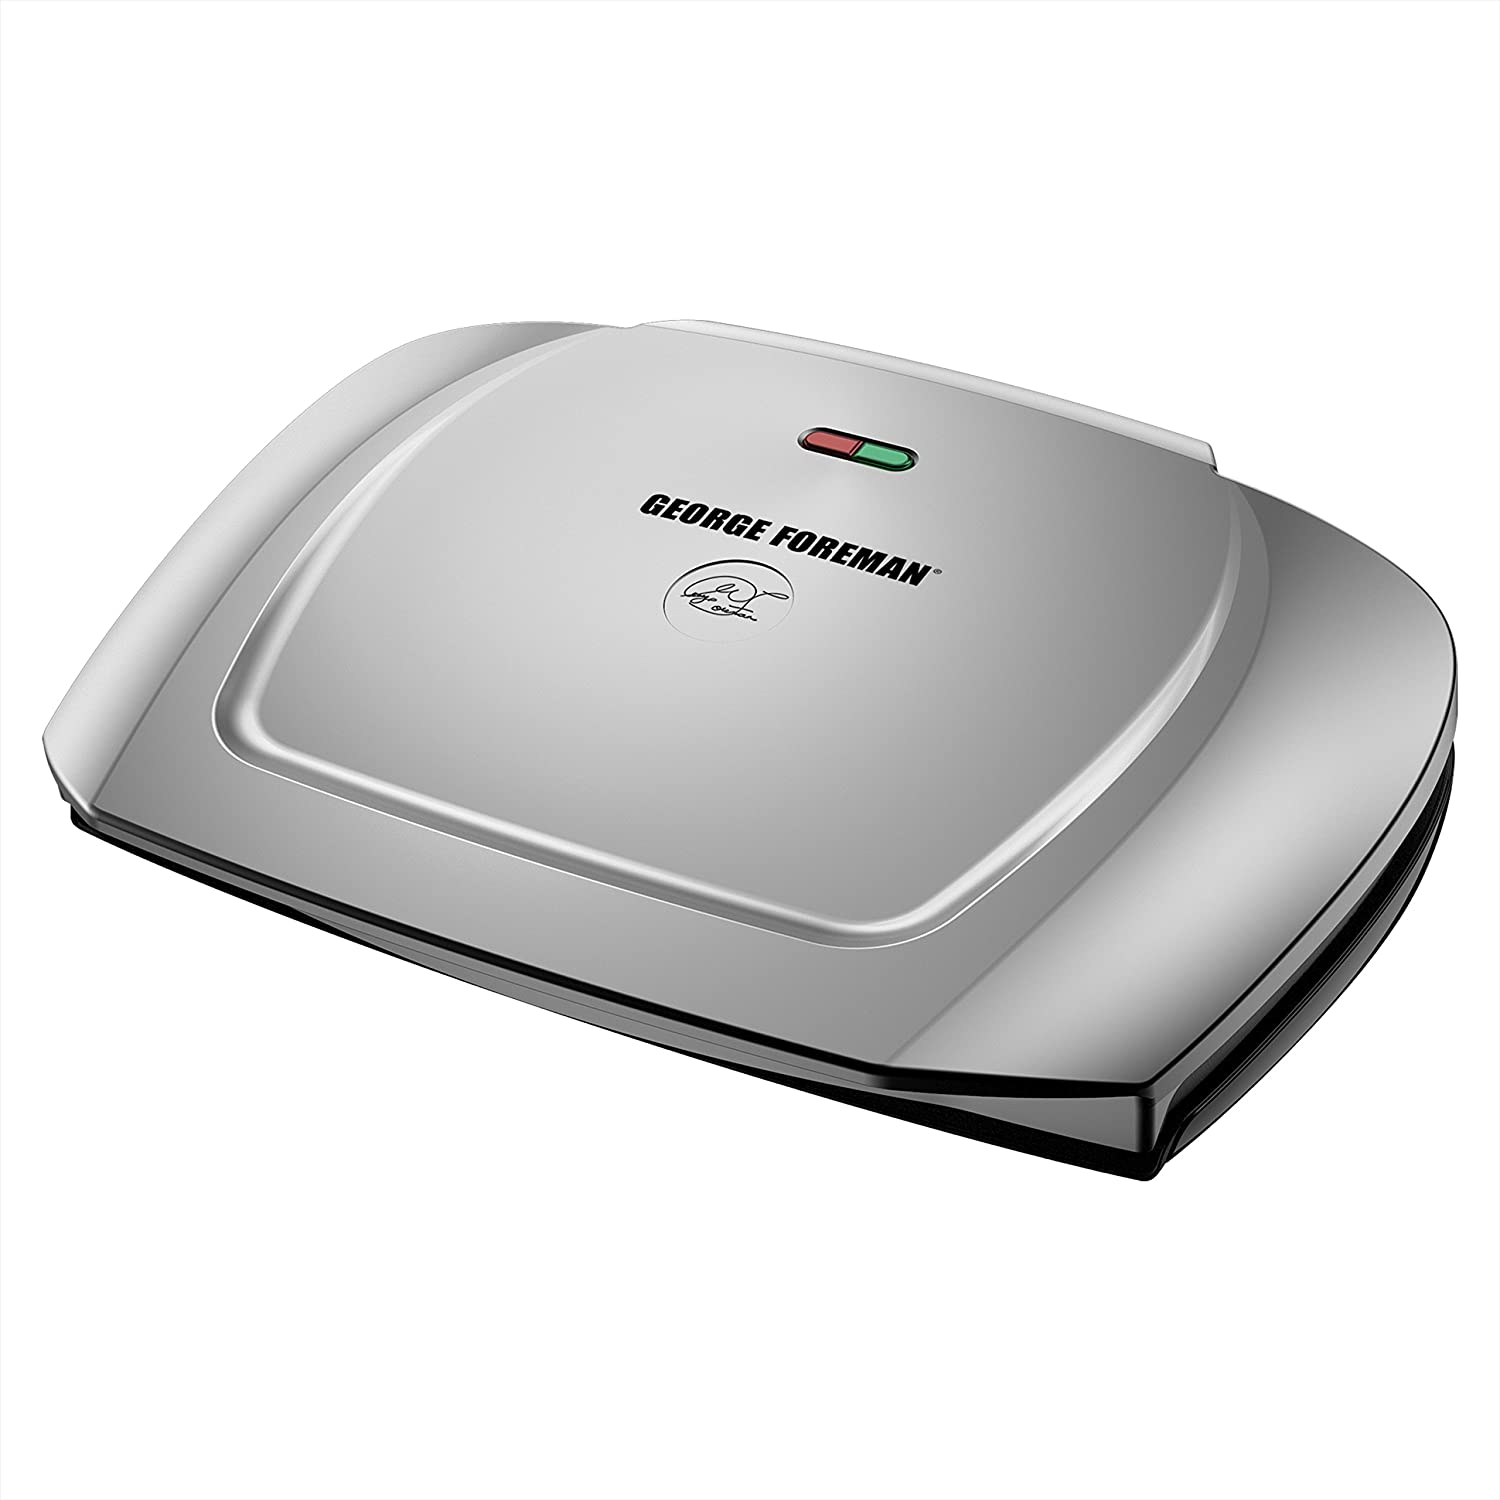 George Foreman 9-Serving Classic Plate Grill, Silver, GR2144P